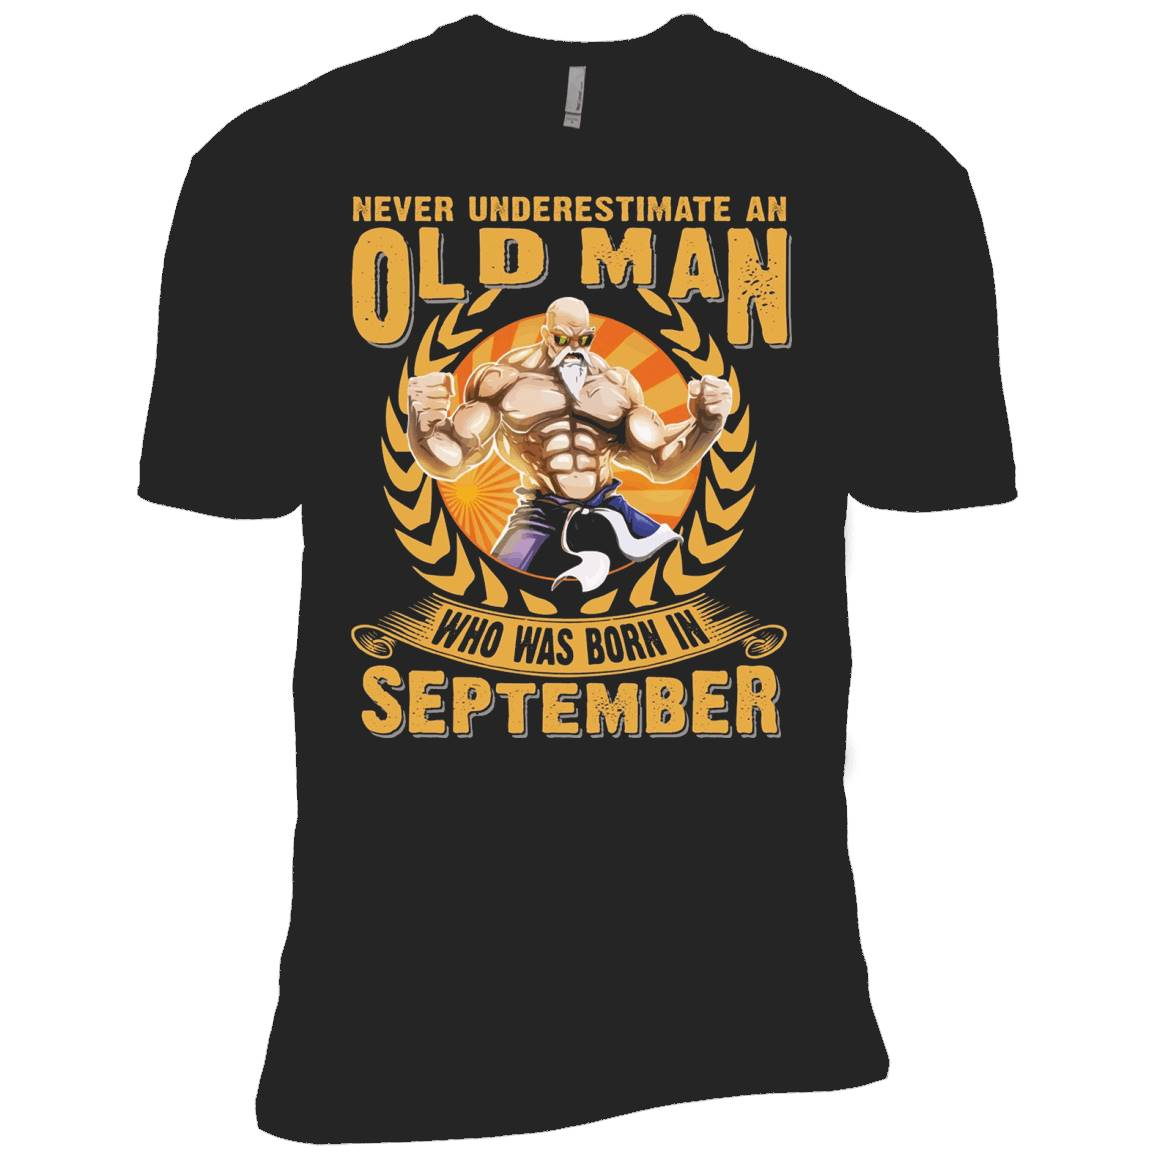 Never Underestimate an Old Man Who Was born in September – T-Shirt